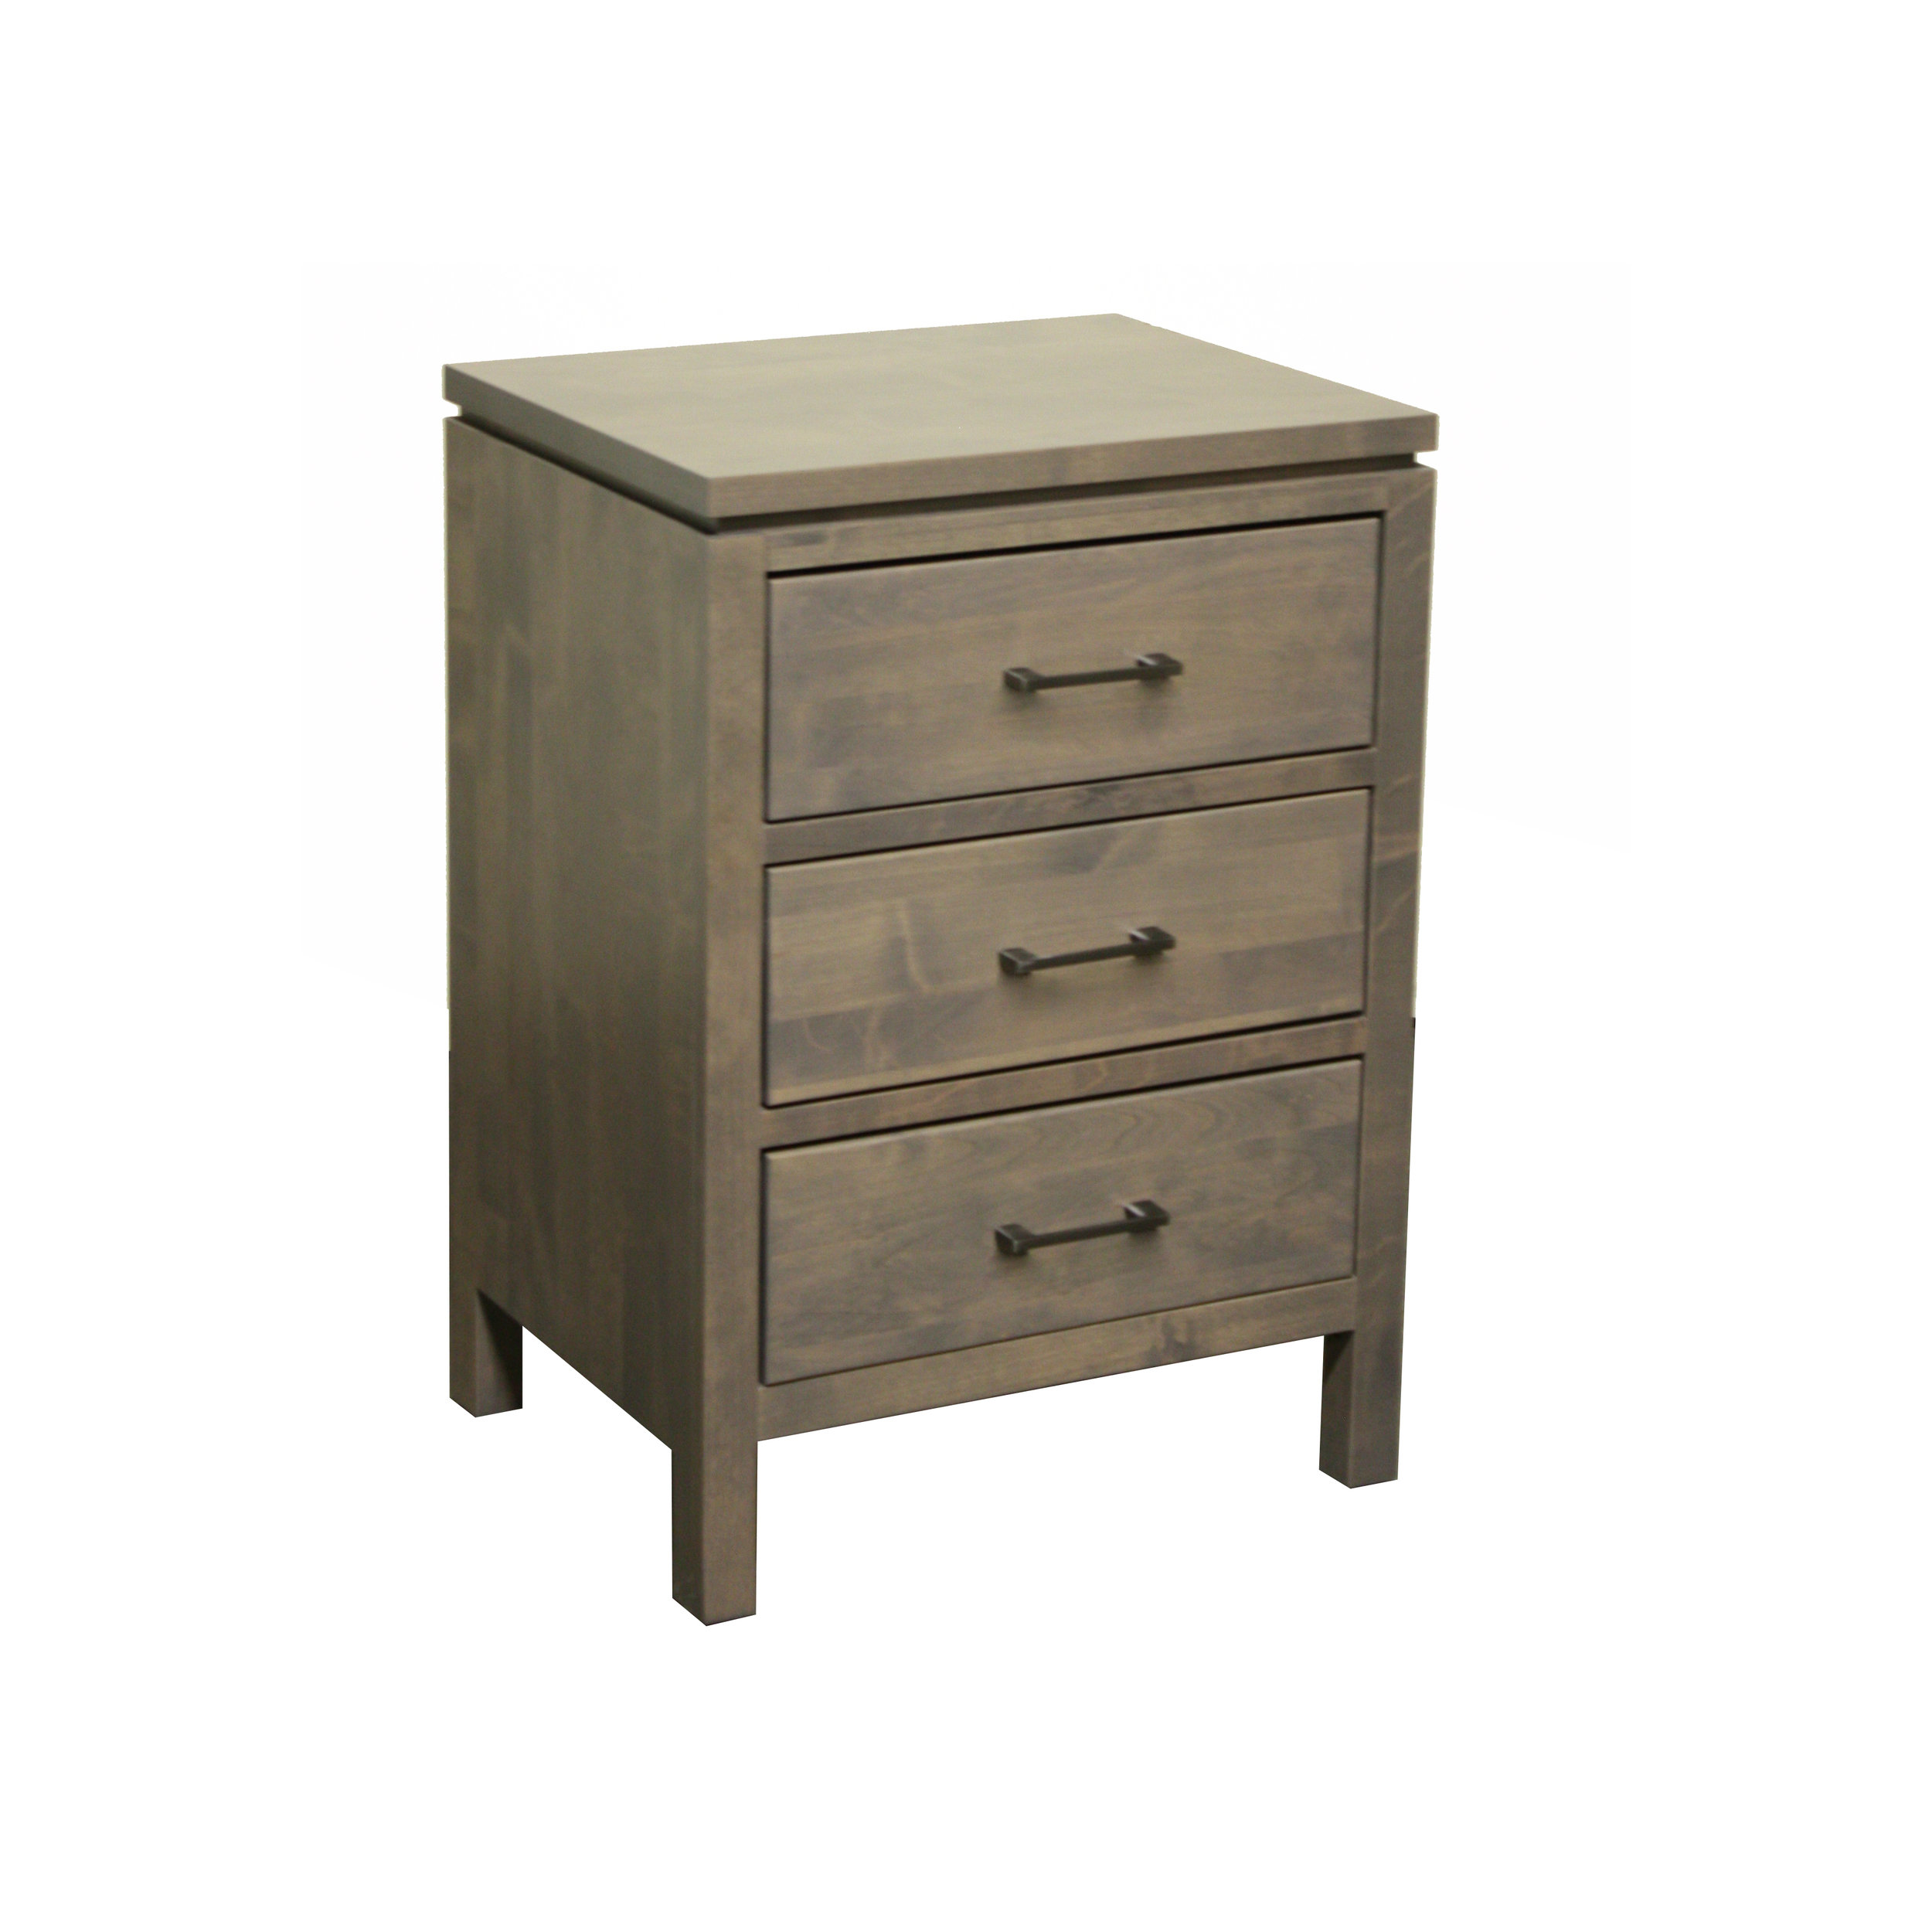 Nightstand - Archbold - 2 West nightstand wide 3 drawer - Finished.jpg